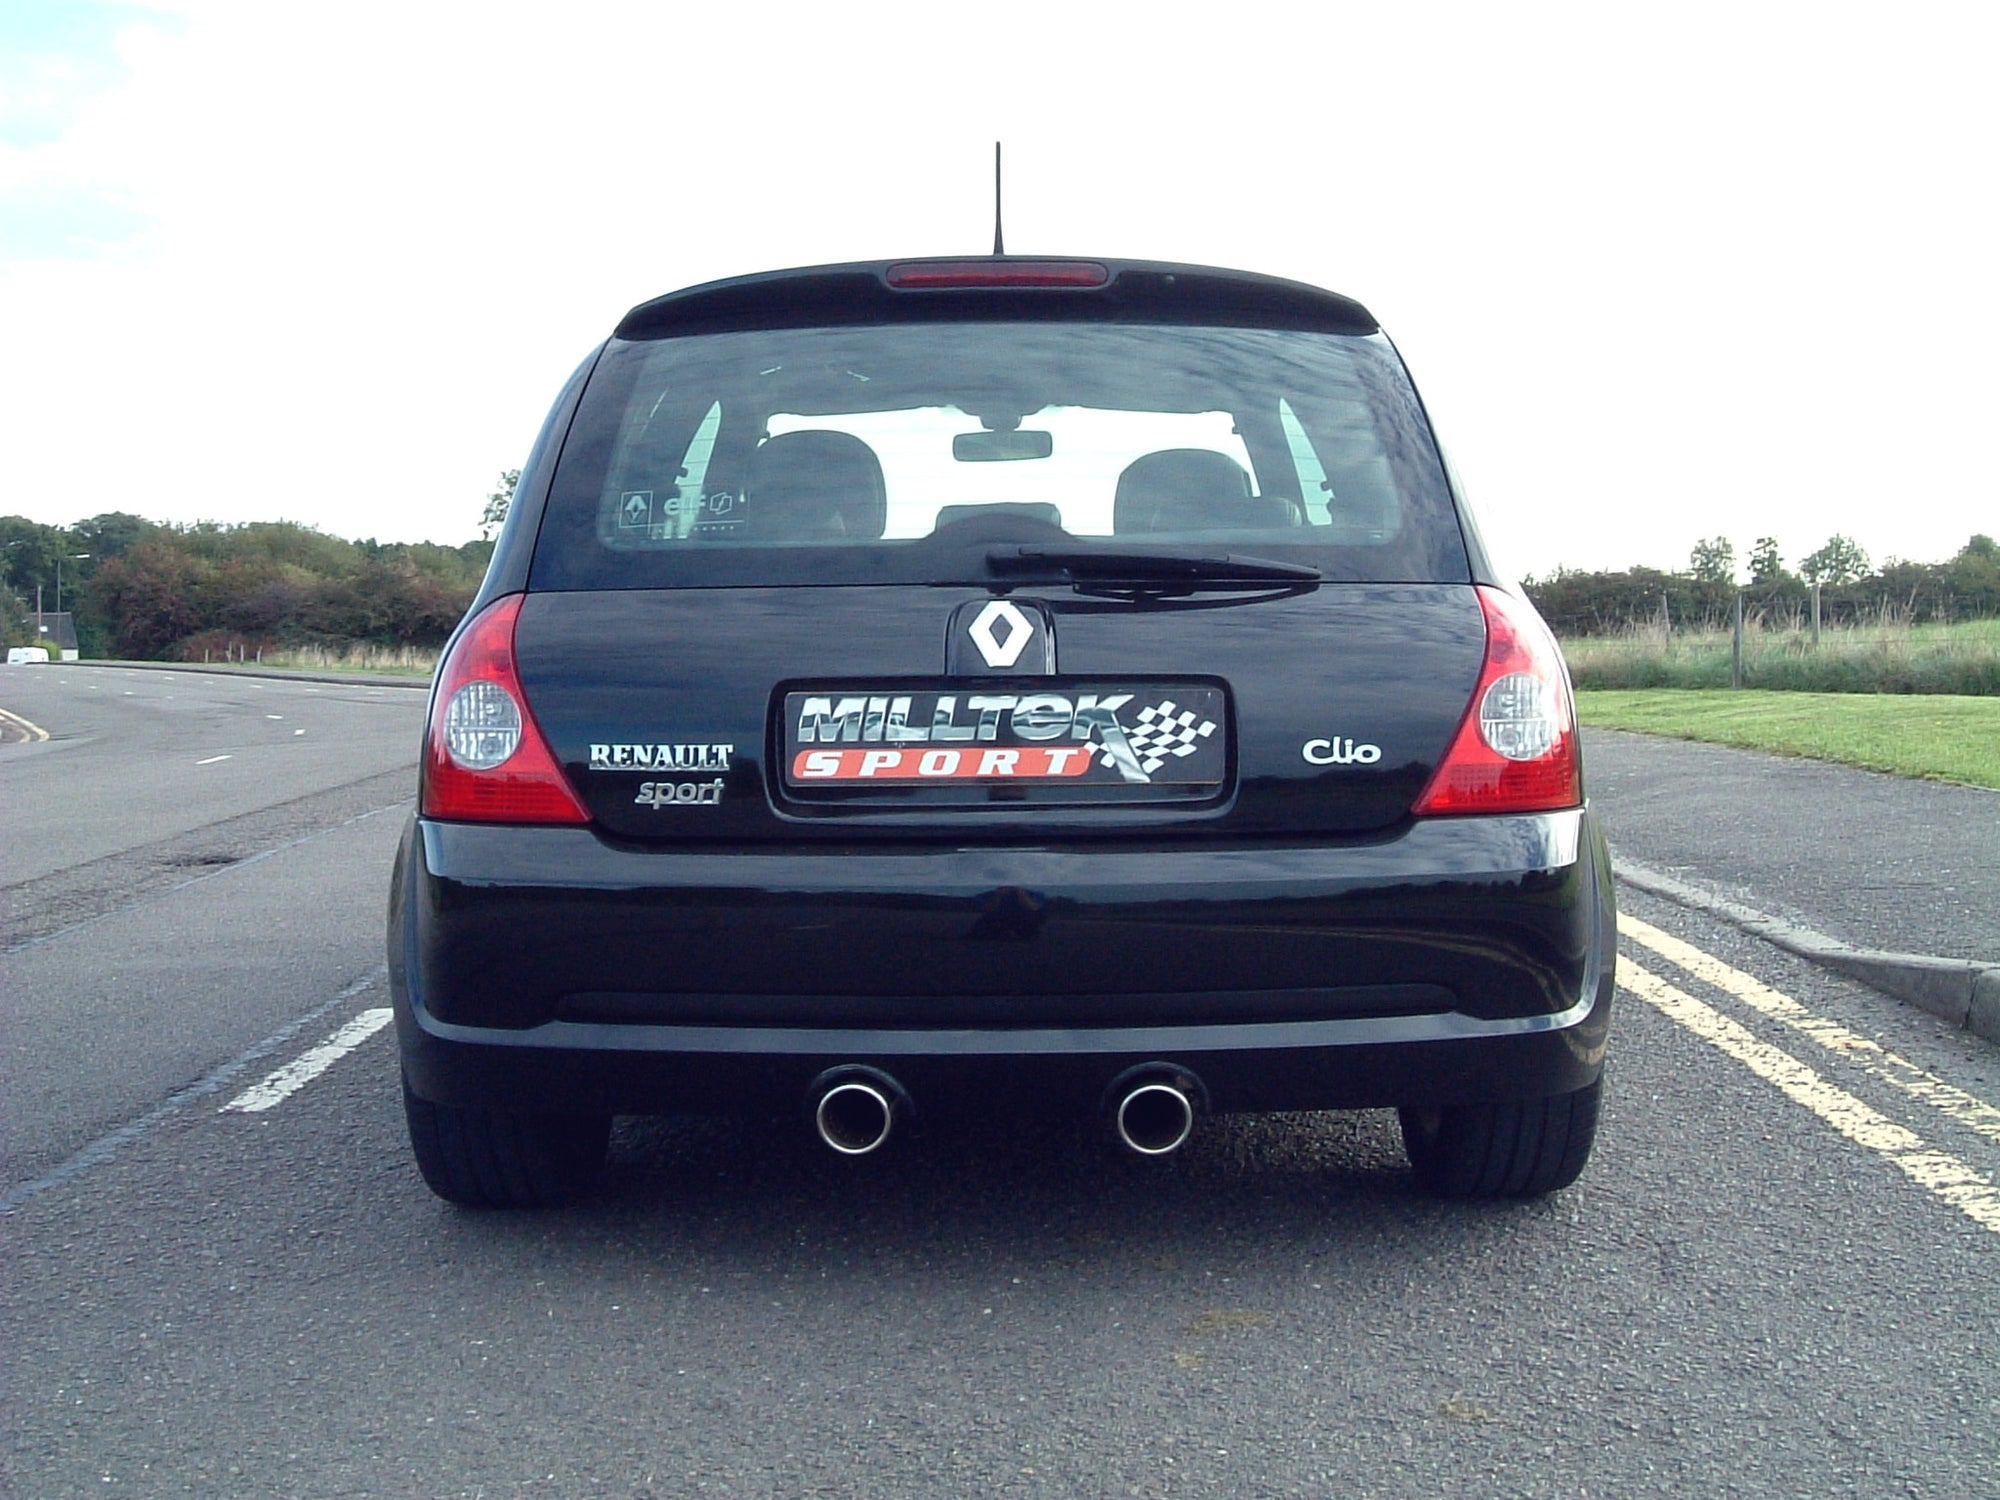 Milltek Exhaust Renault Clio 182 2.0 16v Full System (including Cat Replacement Pipe) with Dual 90mm Jet tailpipe (SSXRN202)